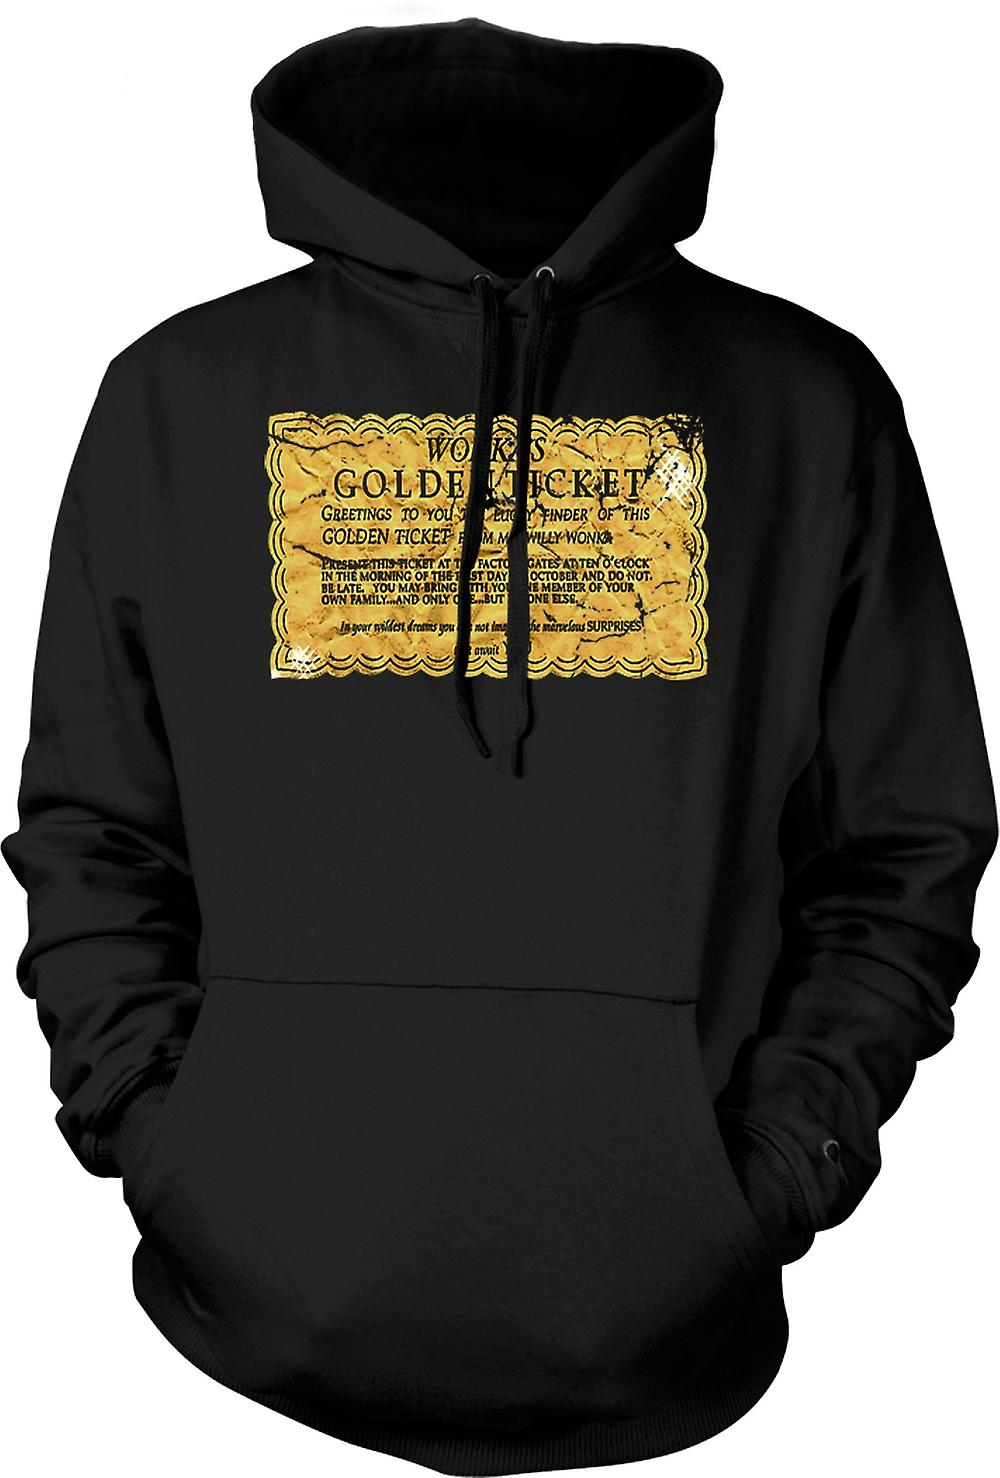 Mens Hoodie - Willy Wonka Golden Ticket - Funny